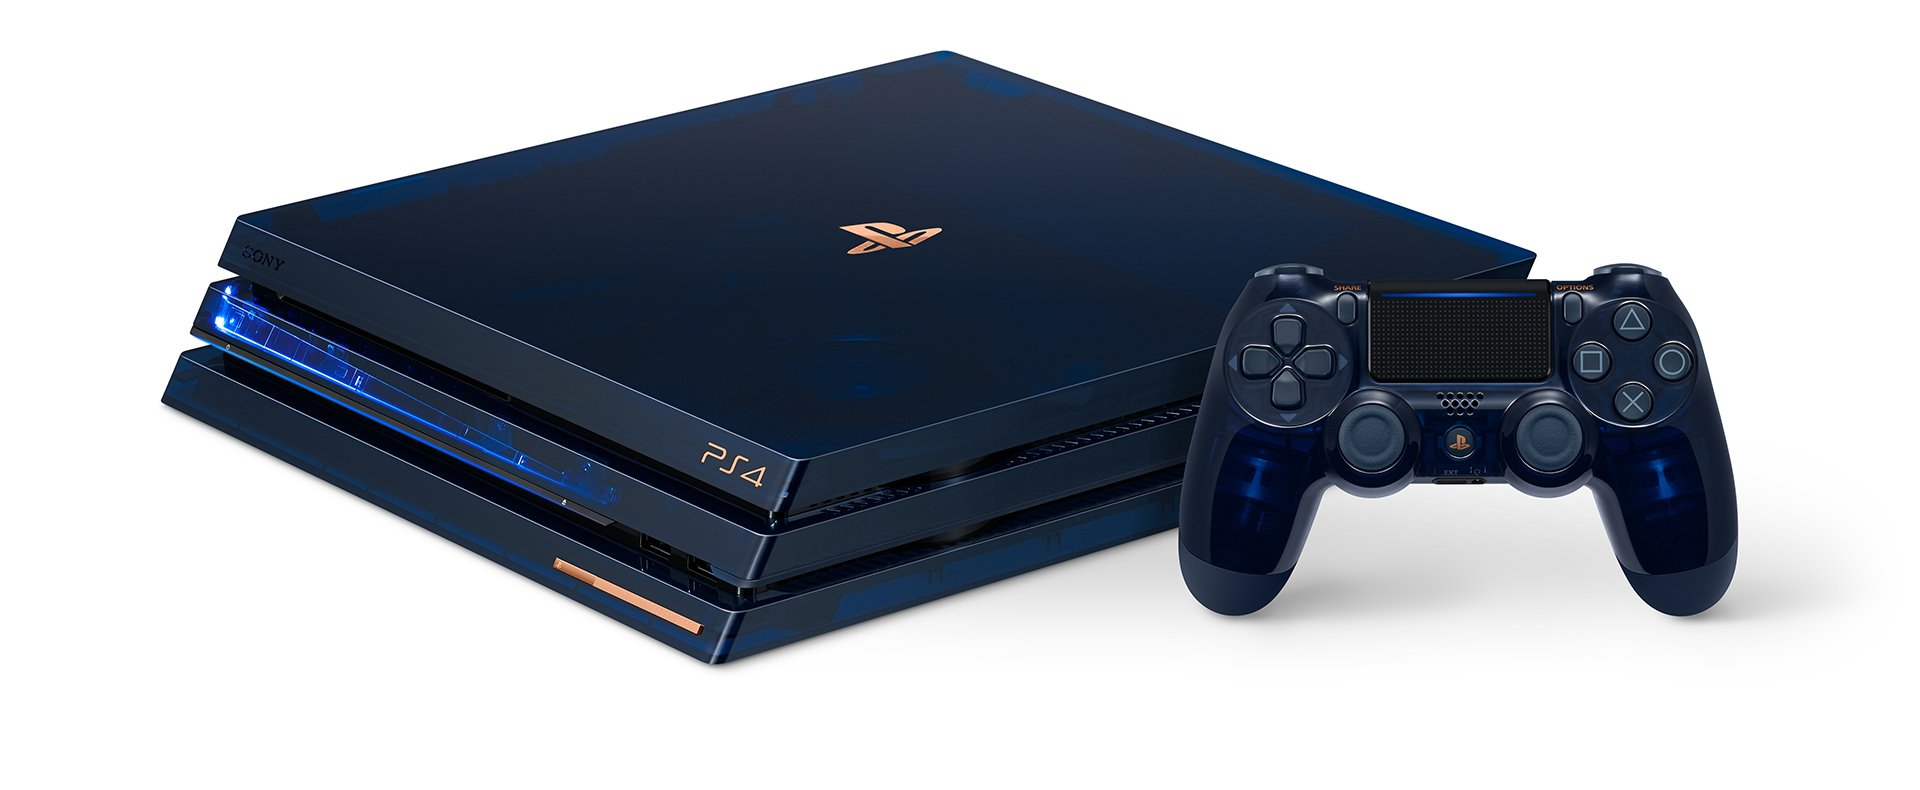 This new translucent PS4 is slick as hell screenshot